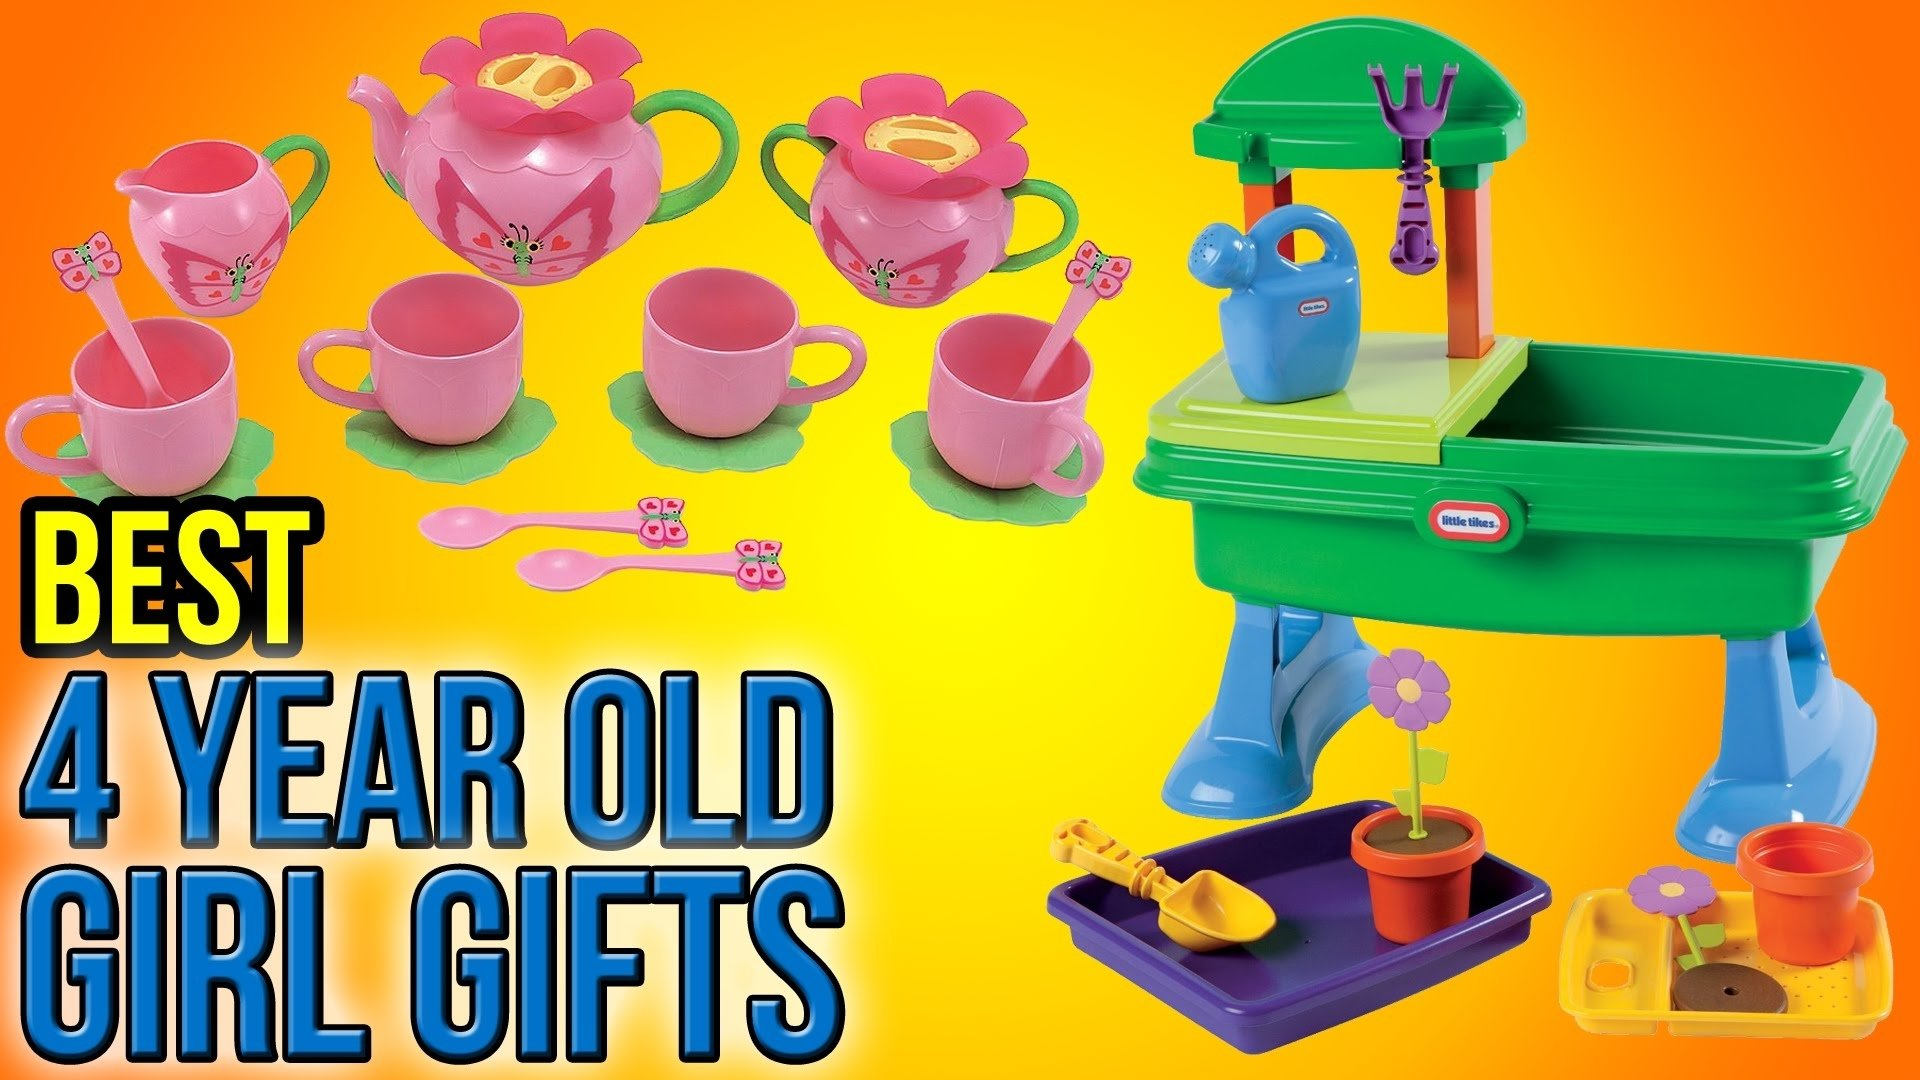 10 Famous Gift Ideas For 4 Yr Old Girl 10 best 4 year old girl gifts 2016 youtube 2020